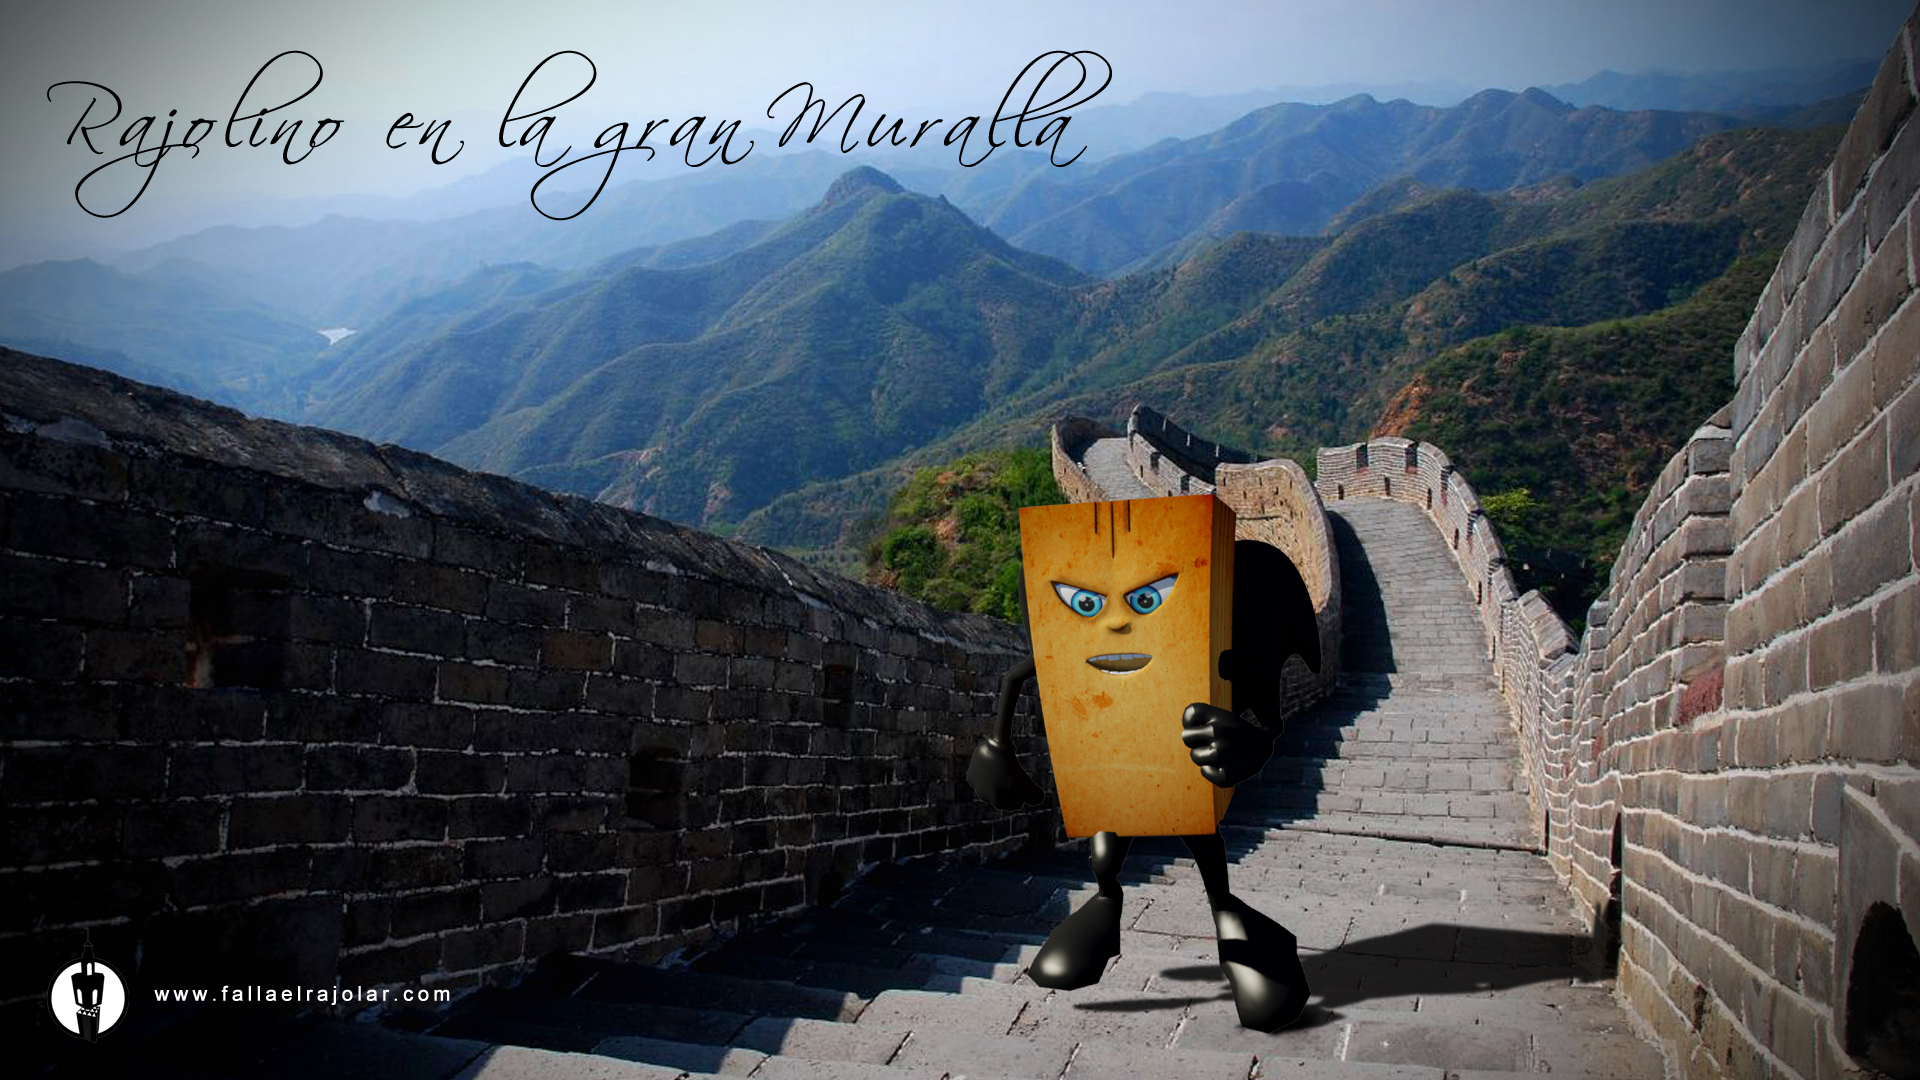 Rajolino on the Great Wall of China